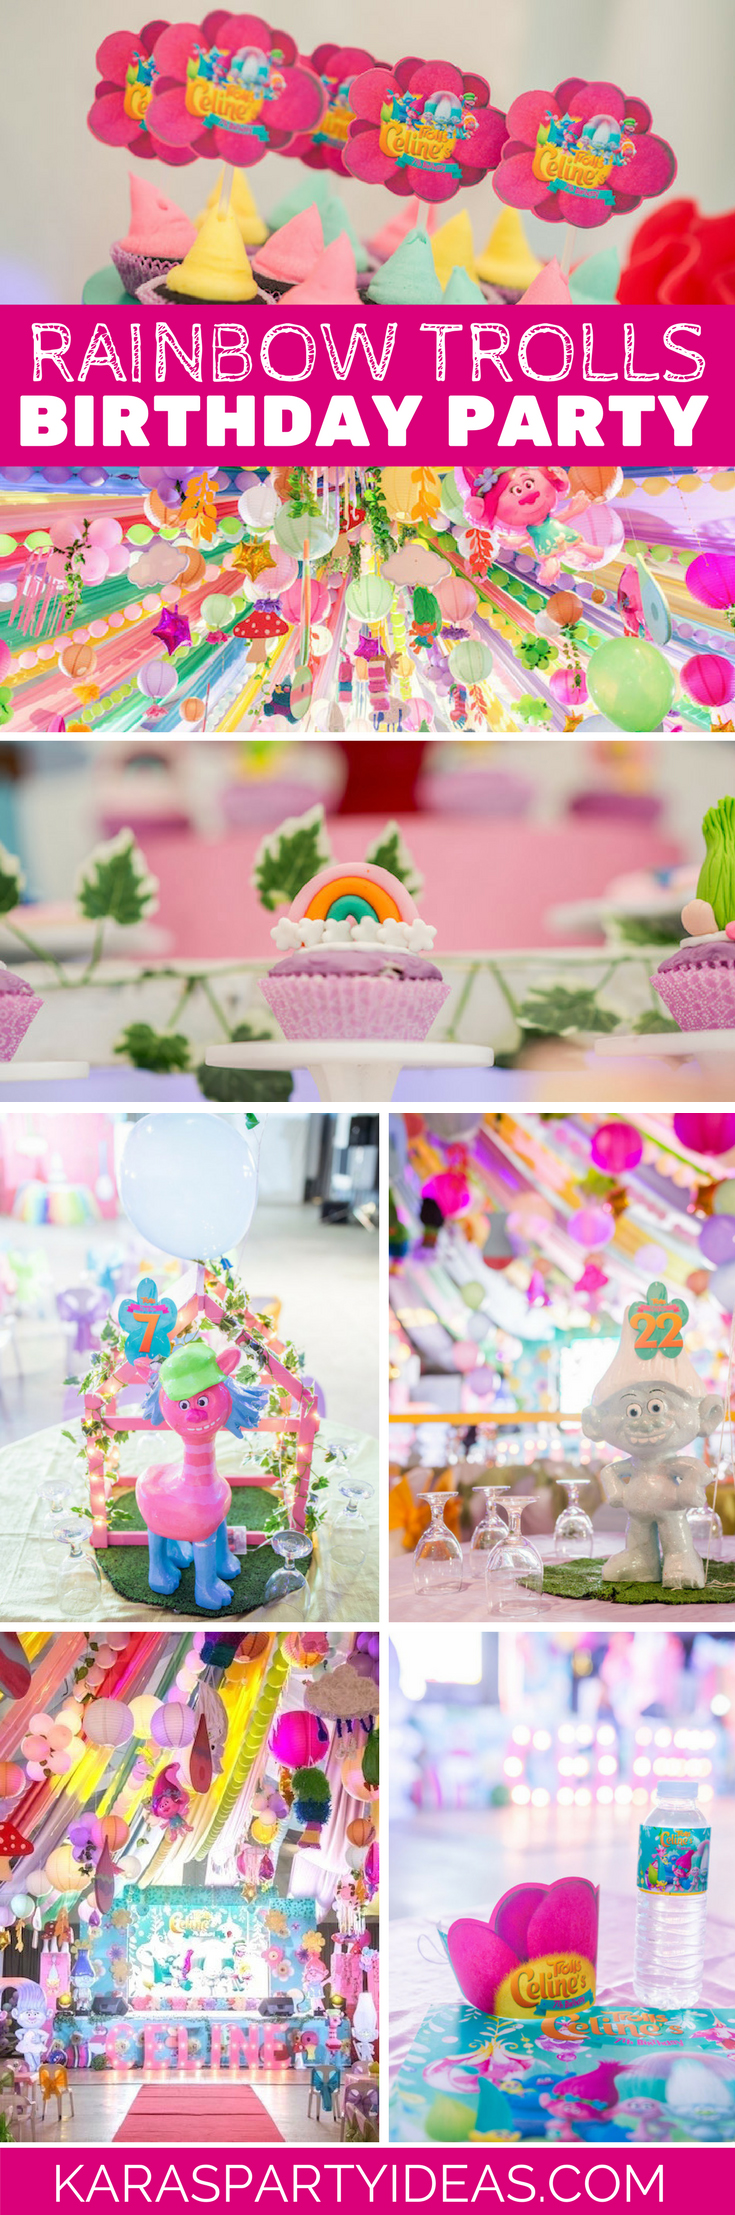 Rainbow Trolls Birthday Party via Kara's Party Ideas - KarasPartyIdeas.com